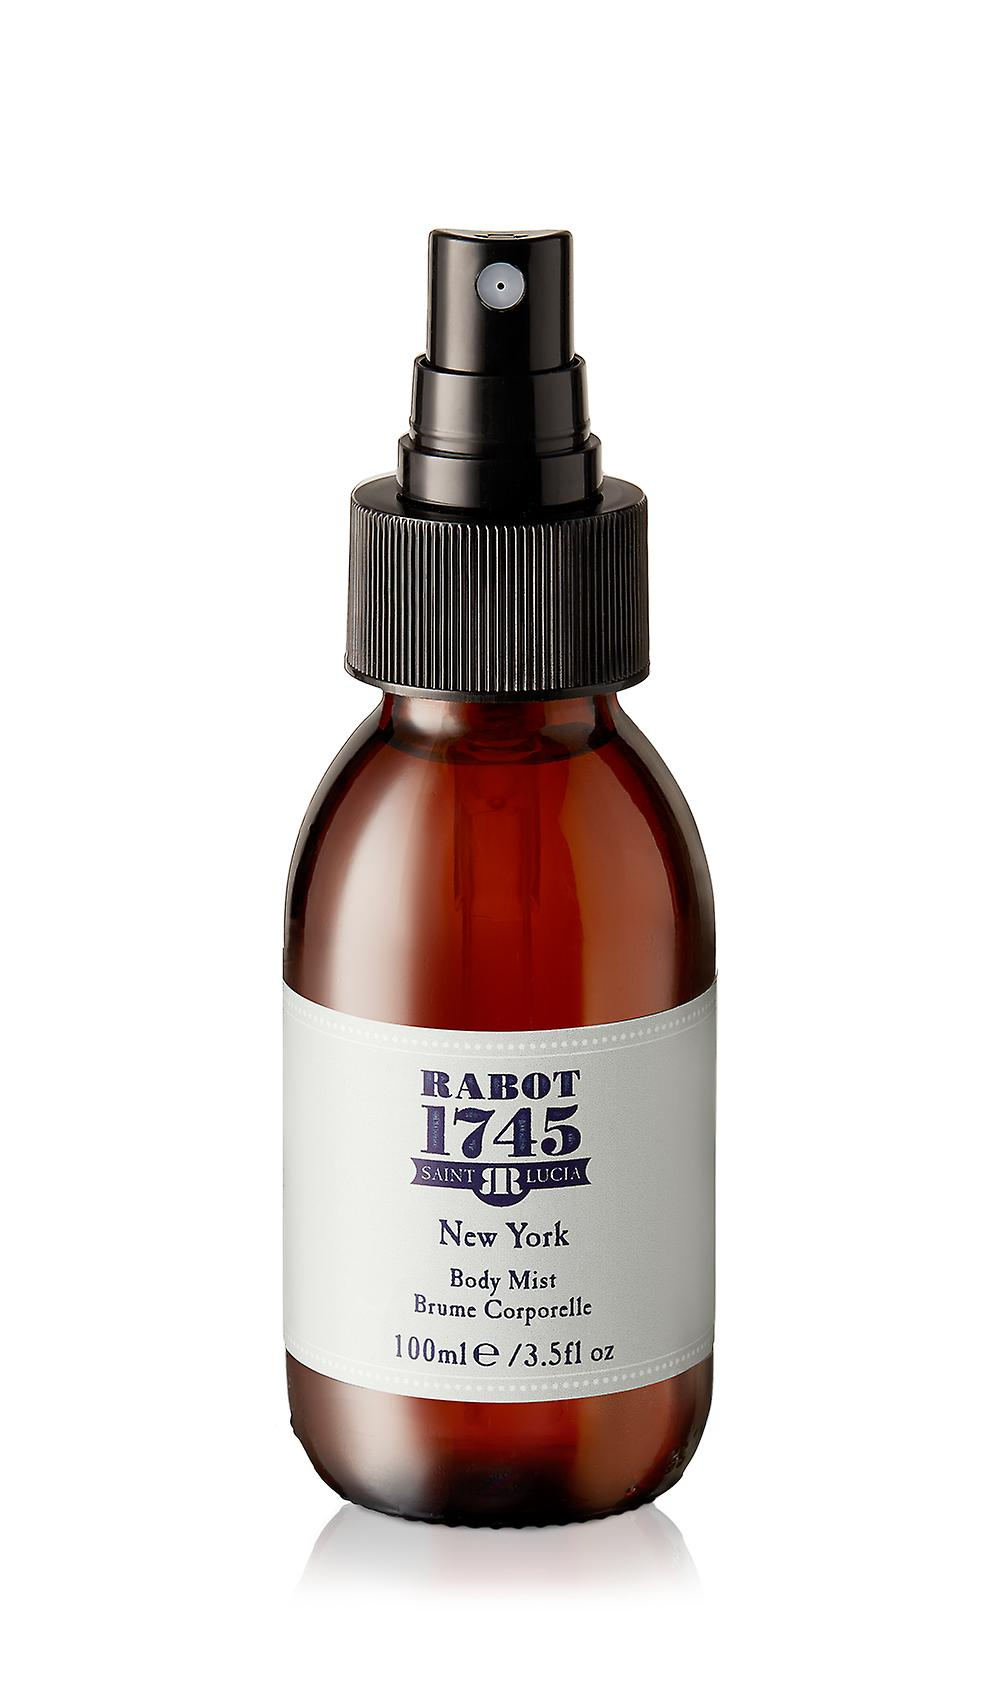 New York Body Mist 100ml